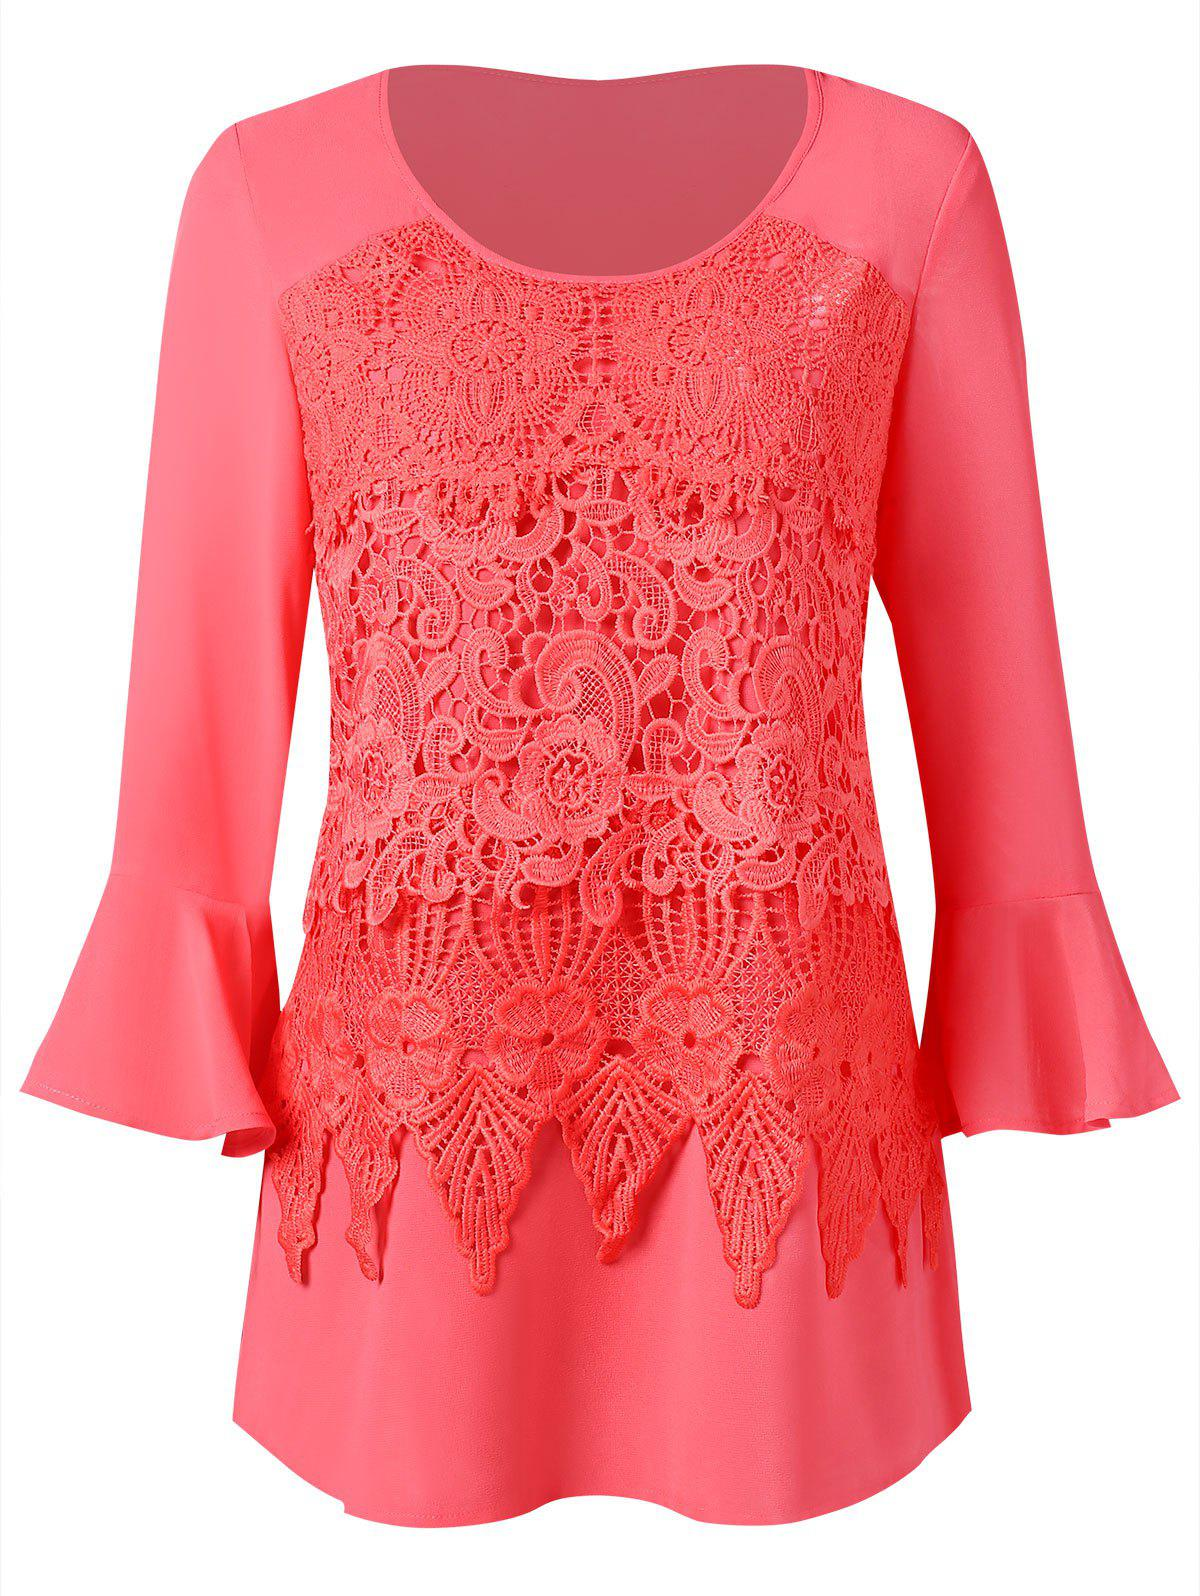 Long Sleeve Top with Lace Panel